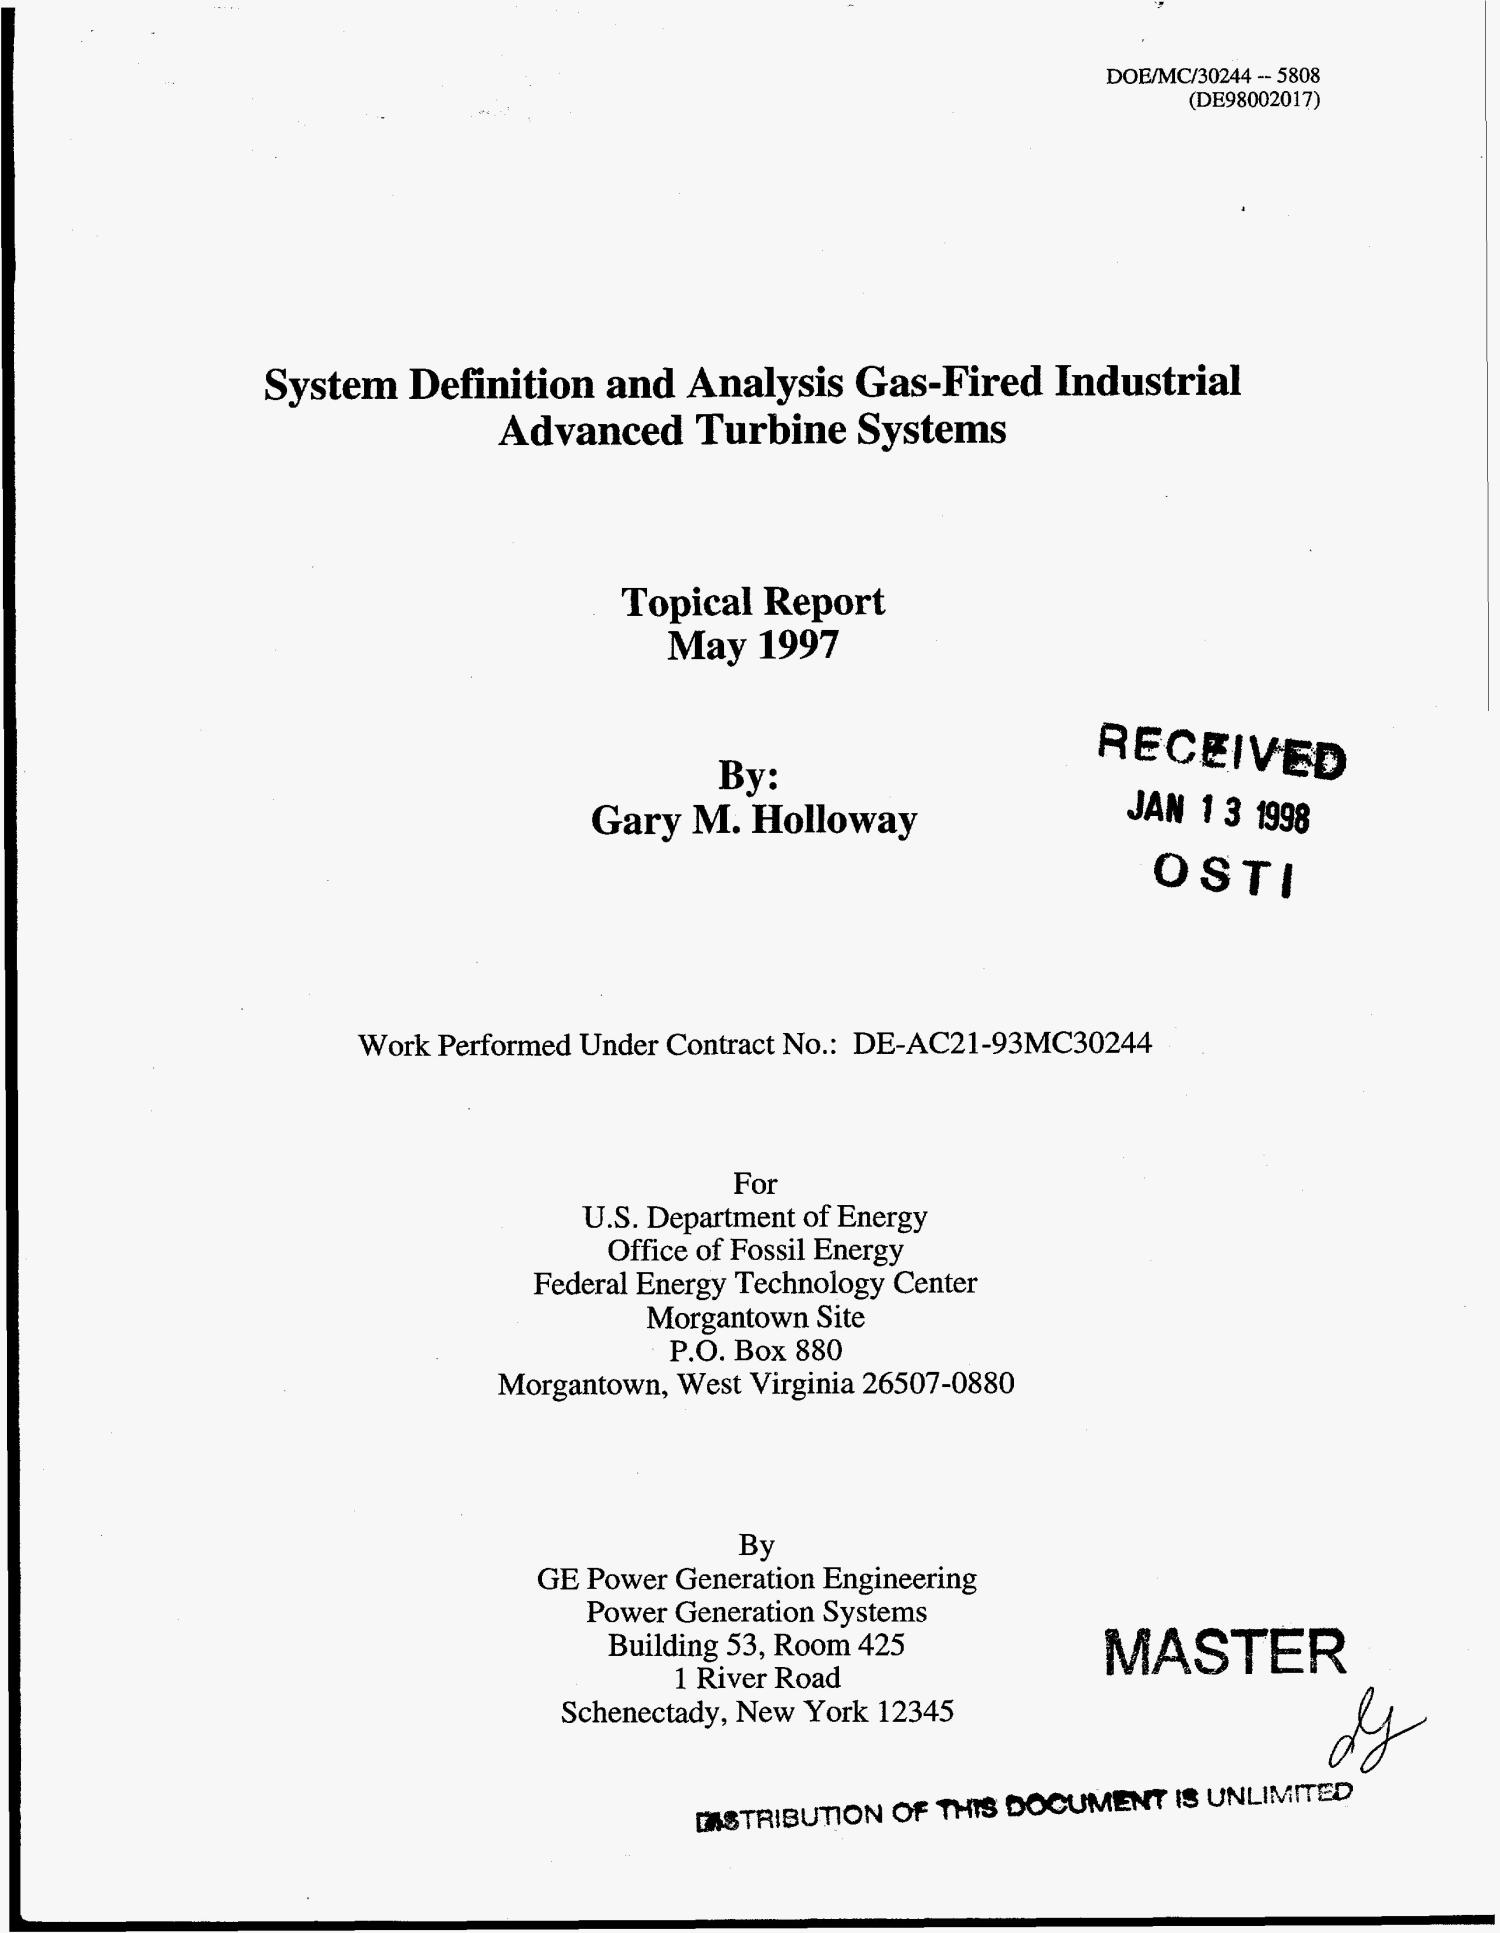 System definition and analysis gas fired industrial advanced